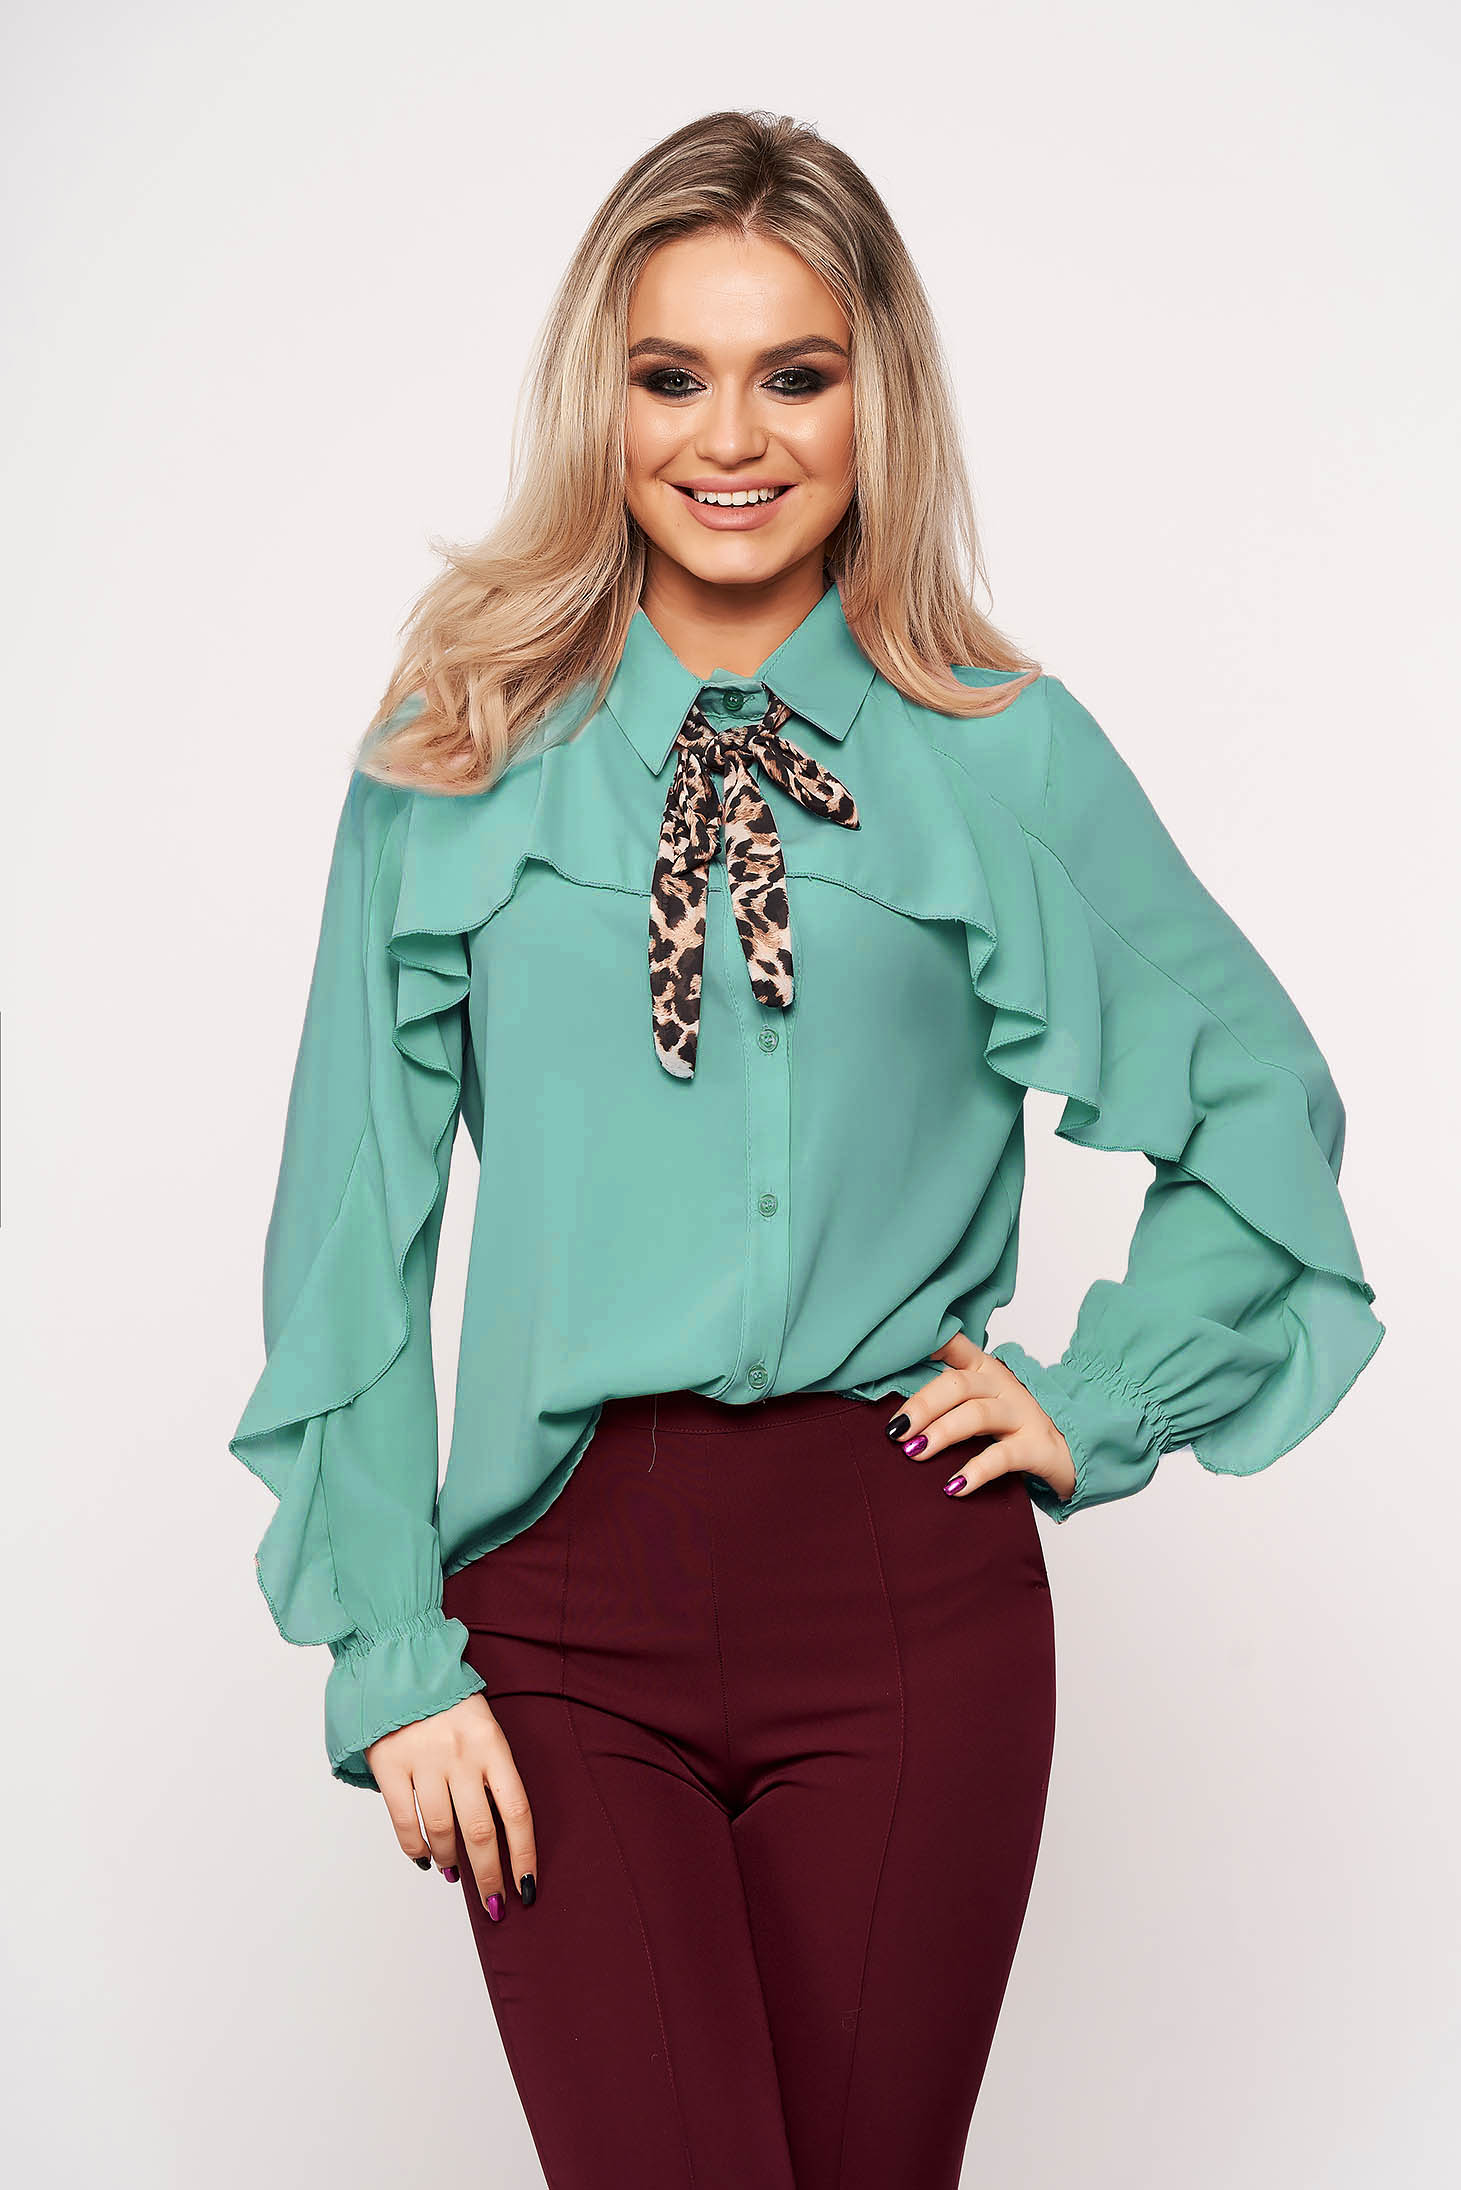 Turquoise women`s shirt bow accessory office animal print from veil fabric